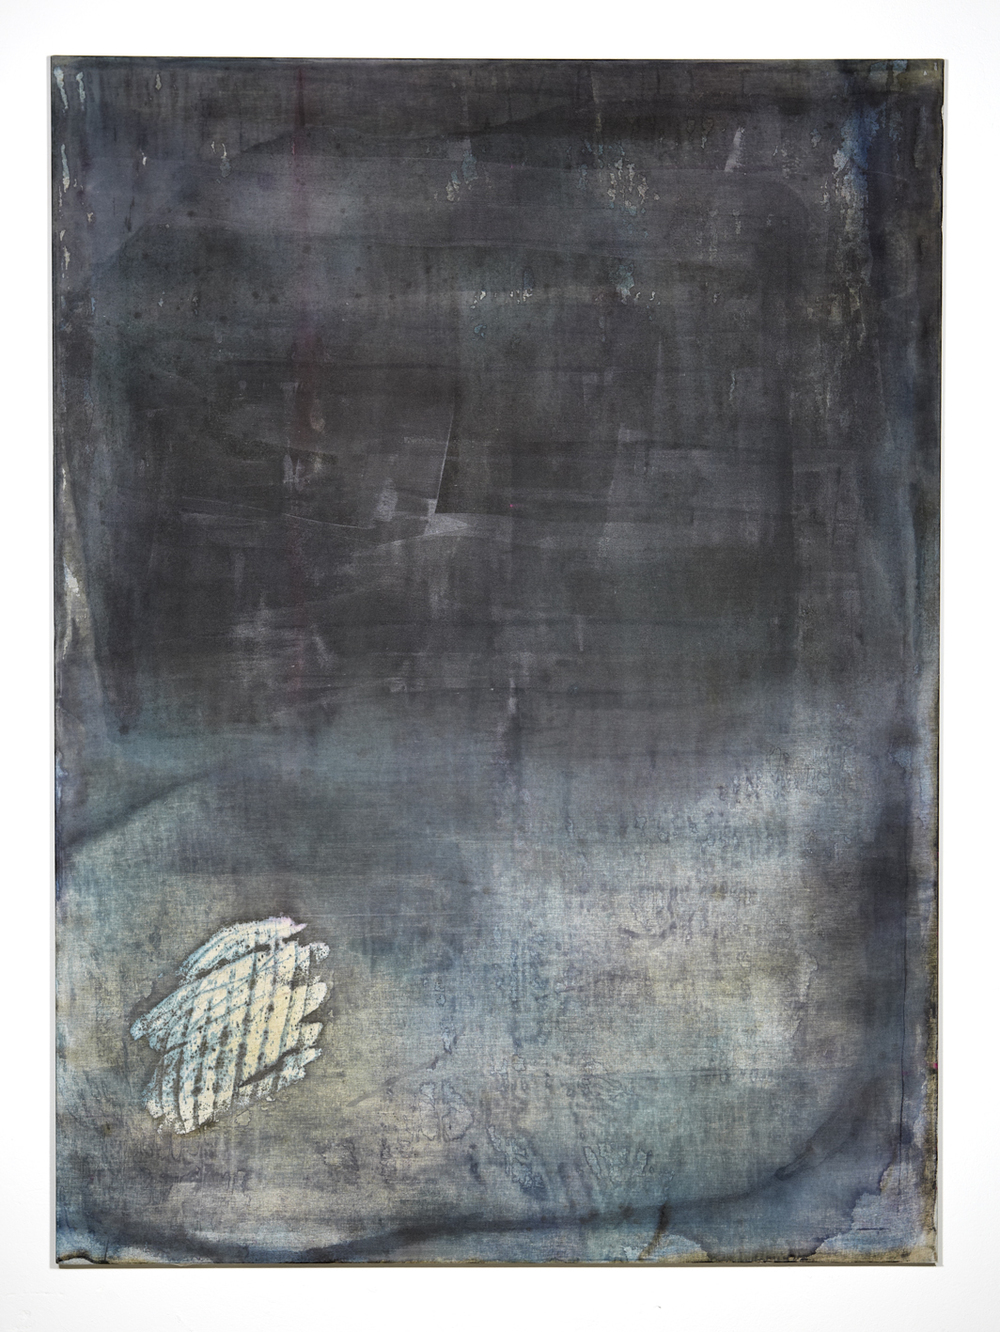 Martin Aagaard Hansen. Untitled, 2014, water colour, ink and varnish on linen, 190 cm x 140 cm